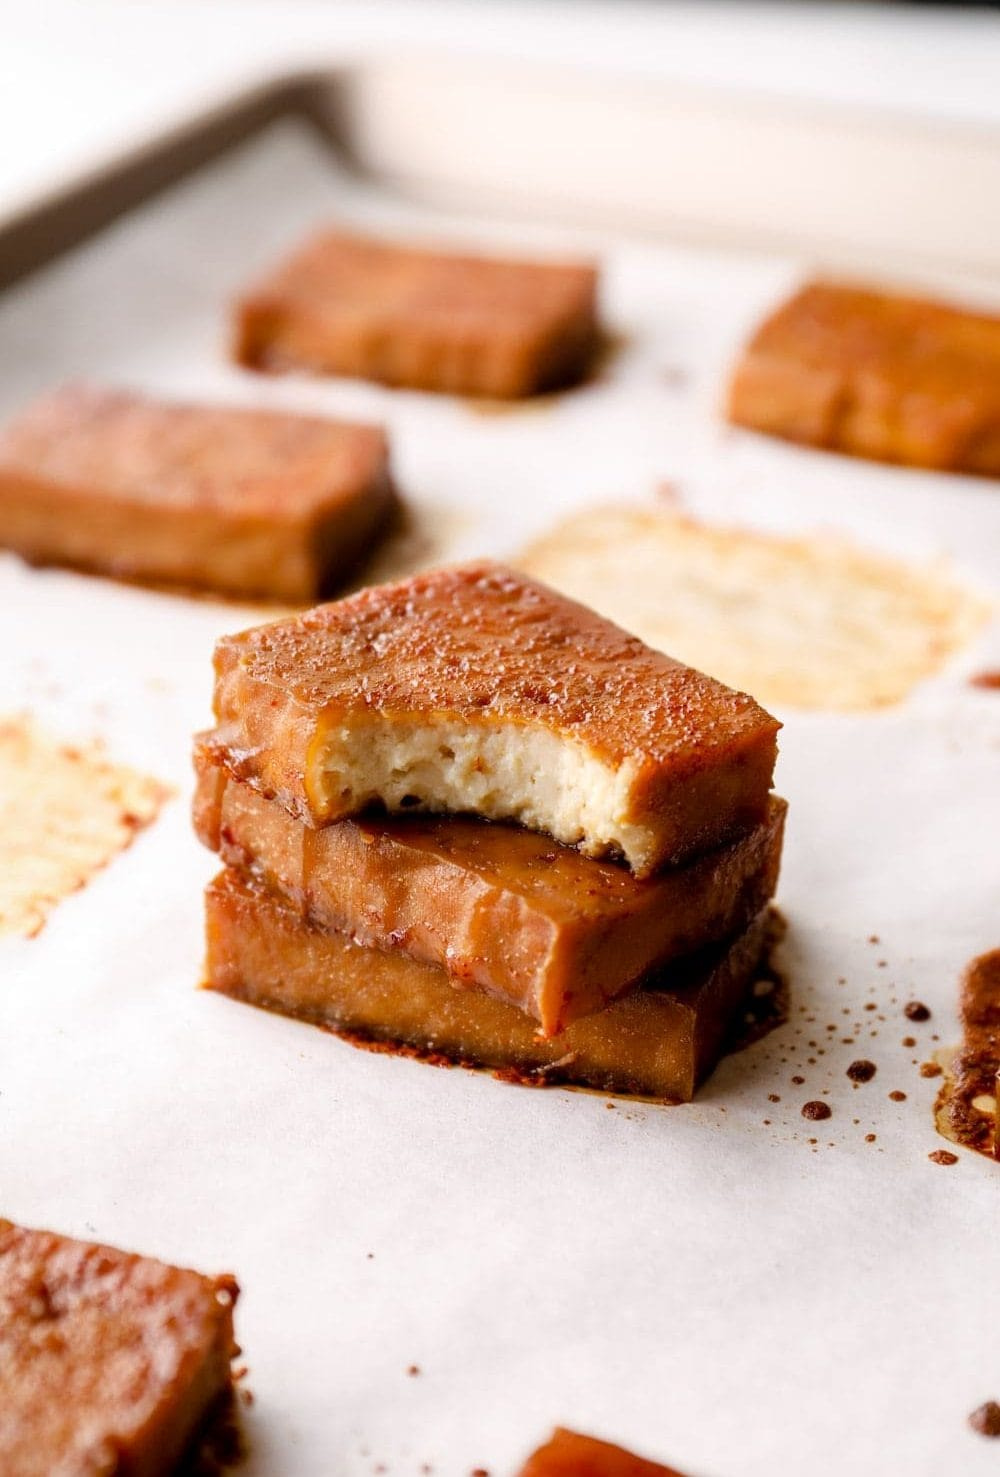 A stack of baked tofu with a bite out of the top piece.